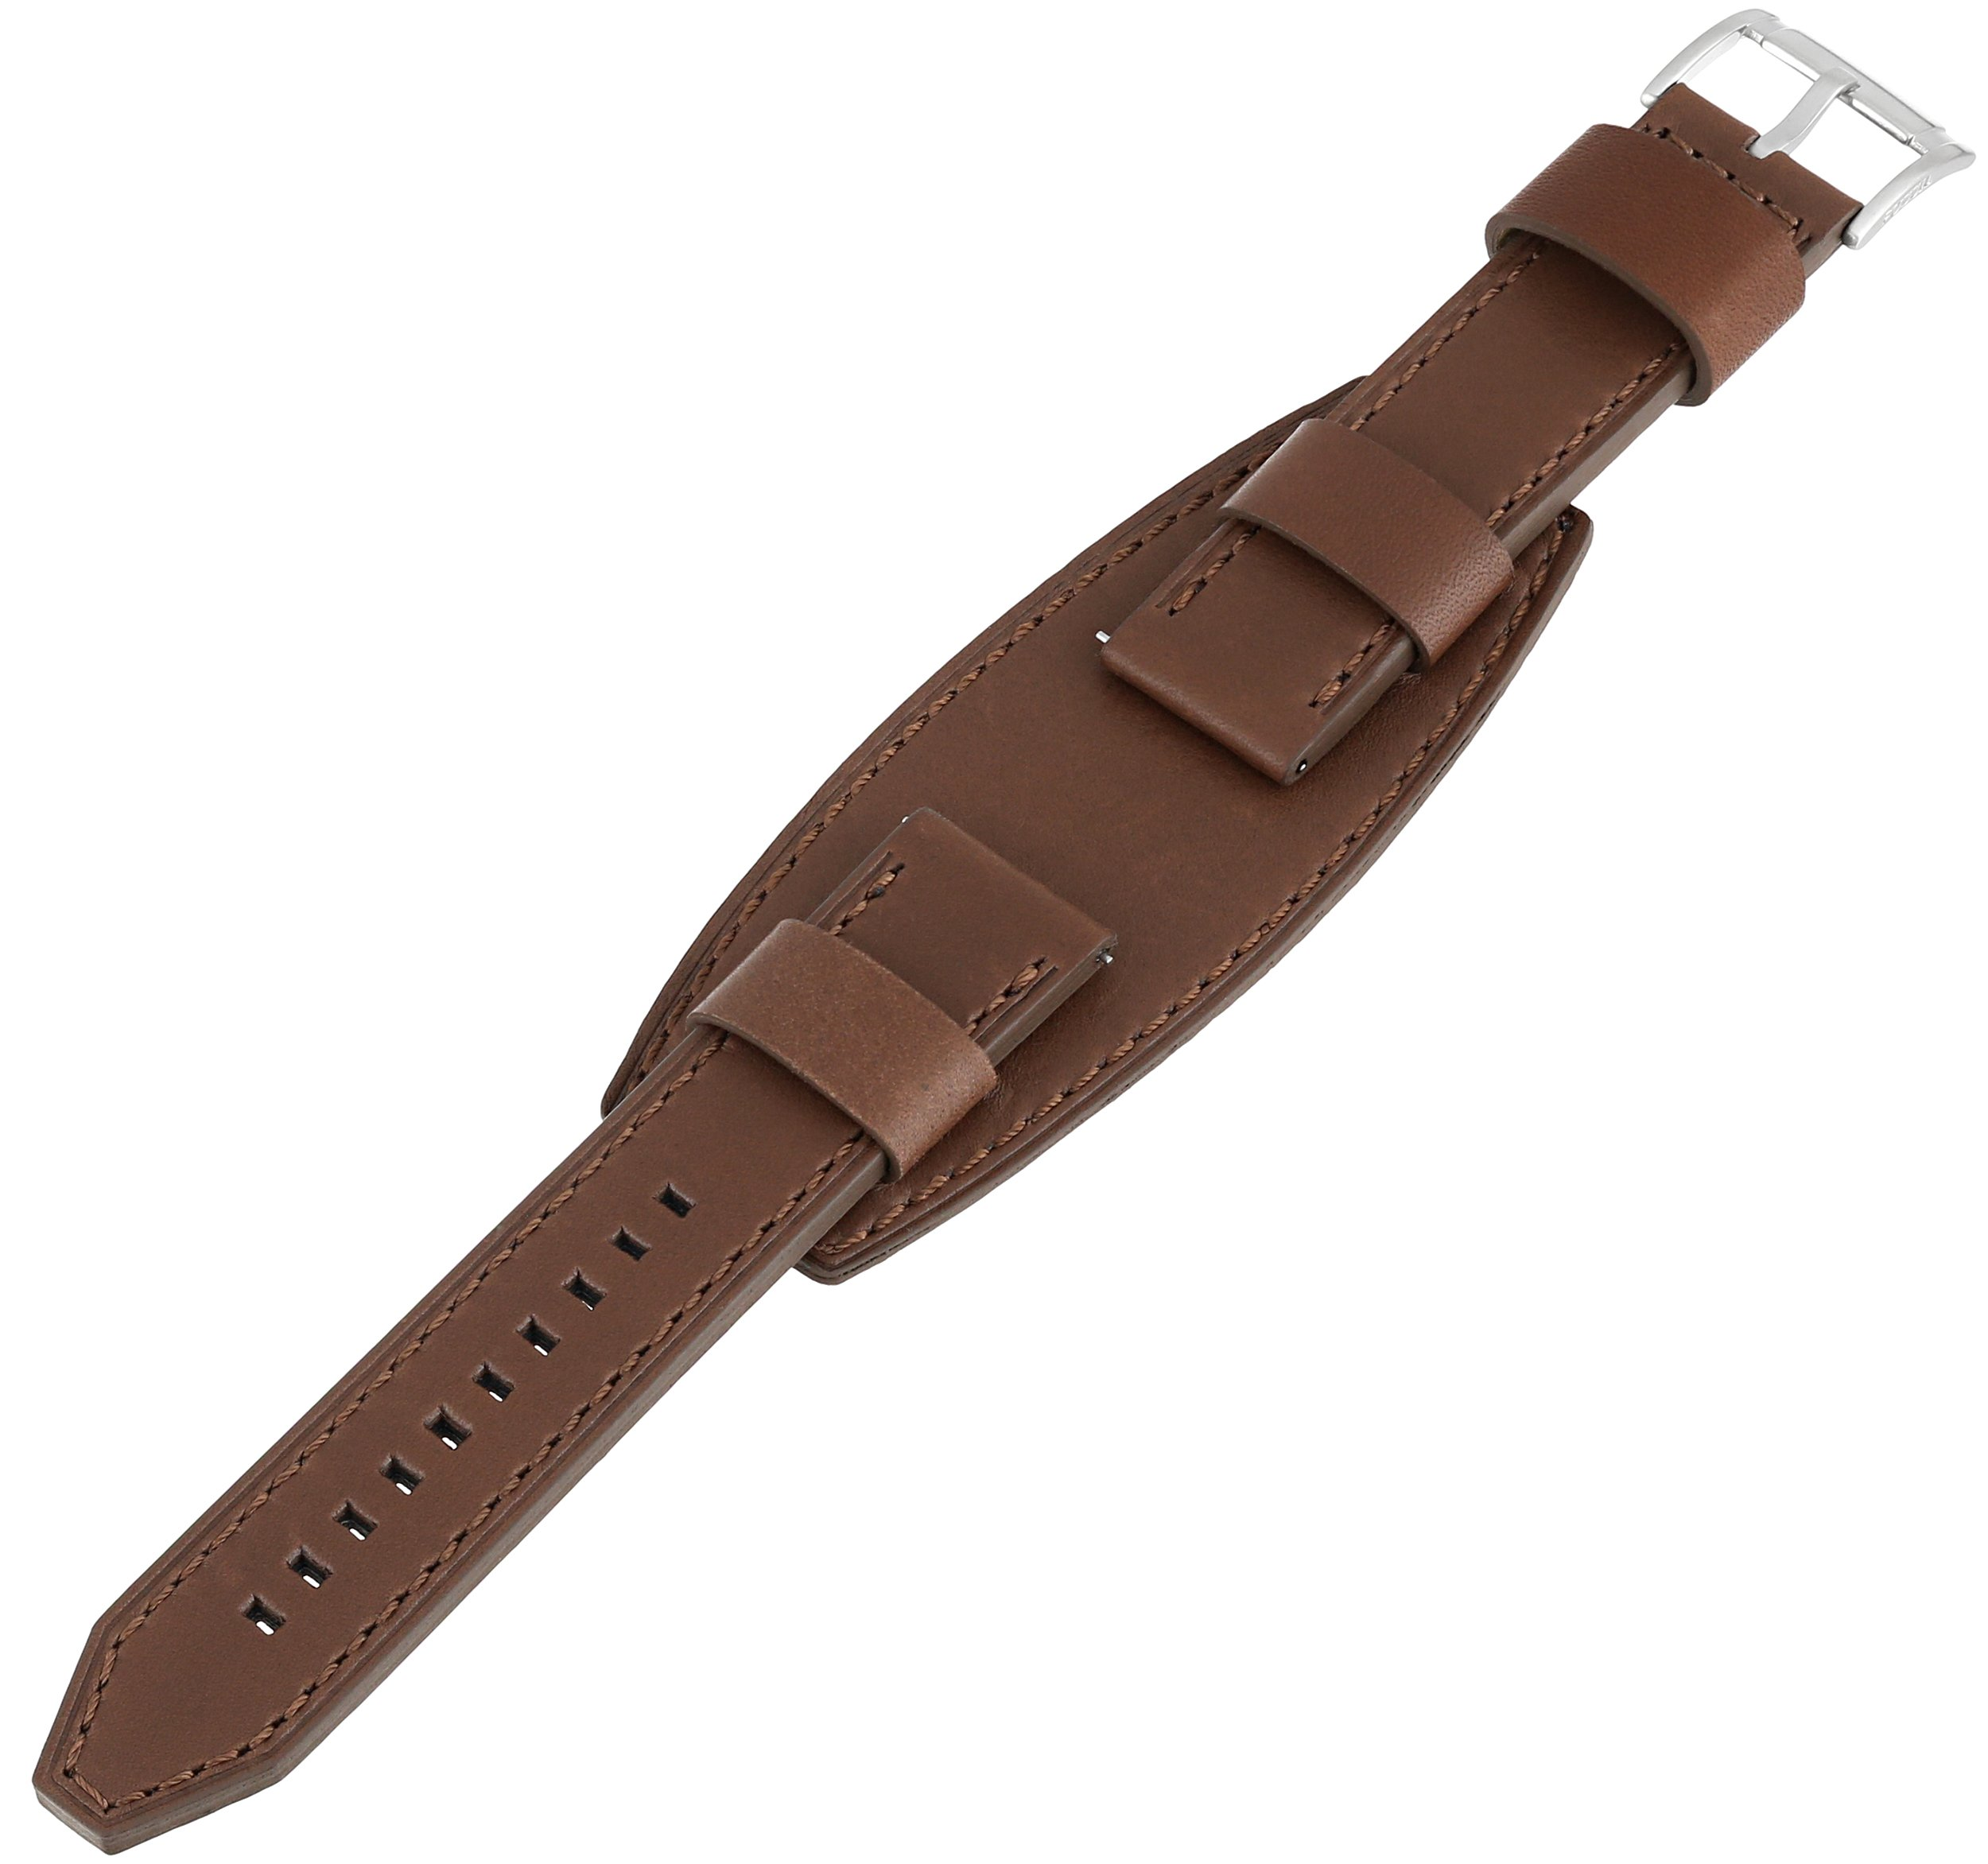 Fossil Men's S221062 Heirloom 22mm Leather Watch Strap - Brown